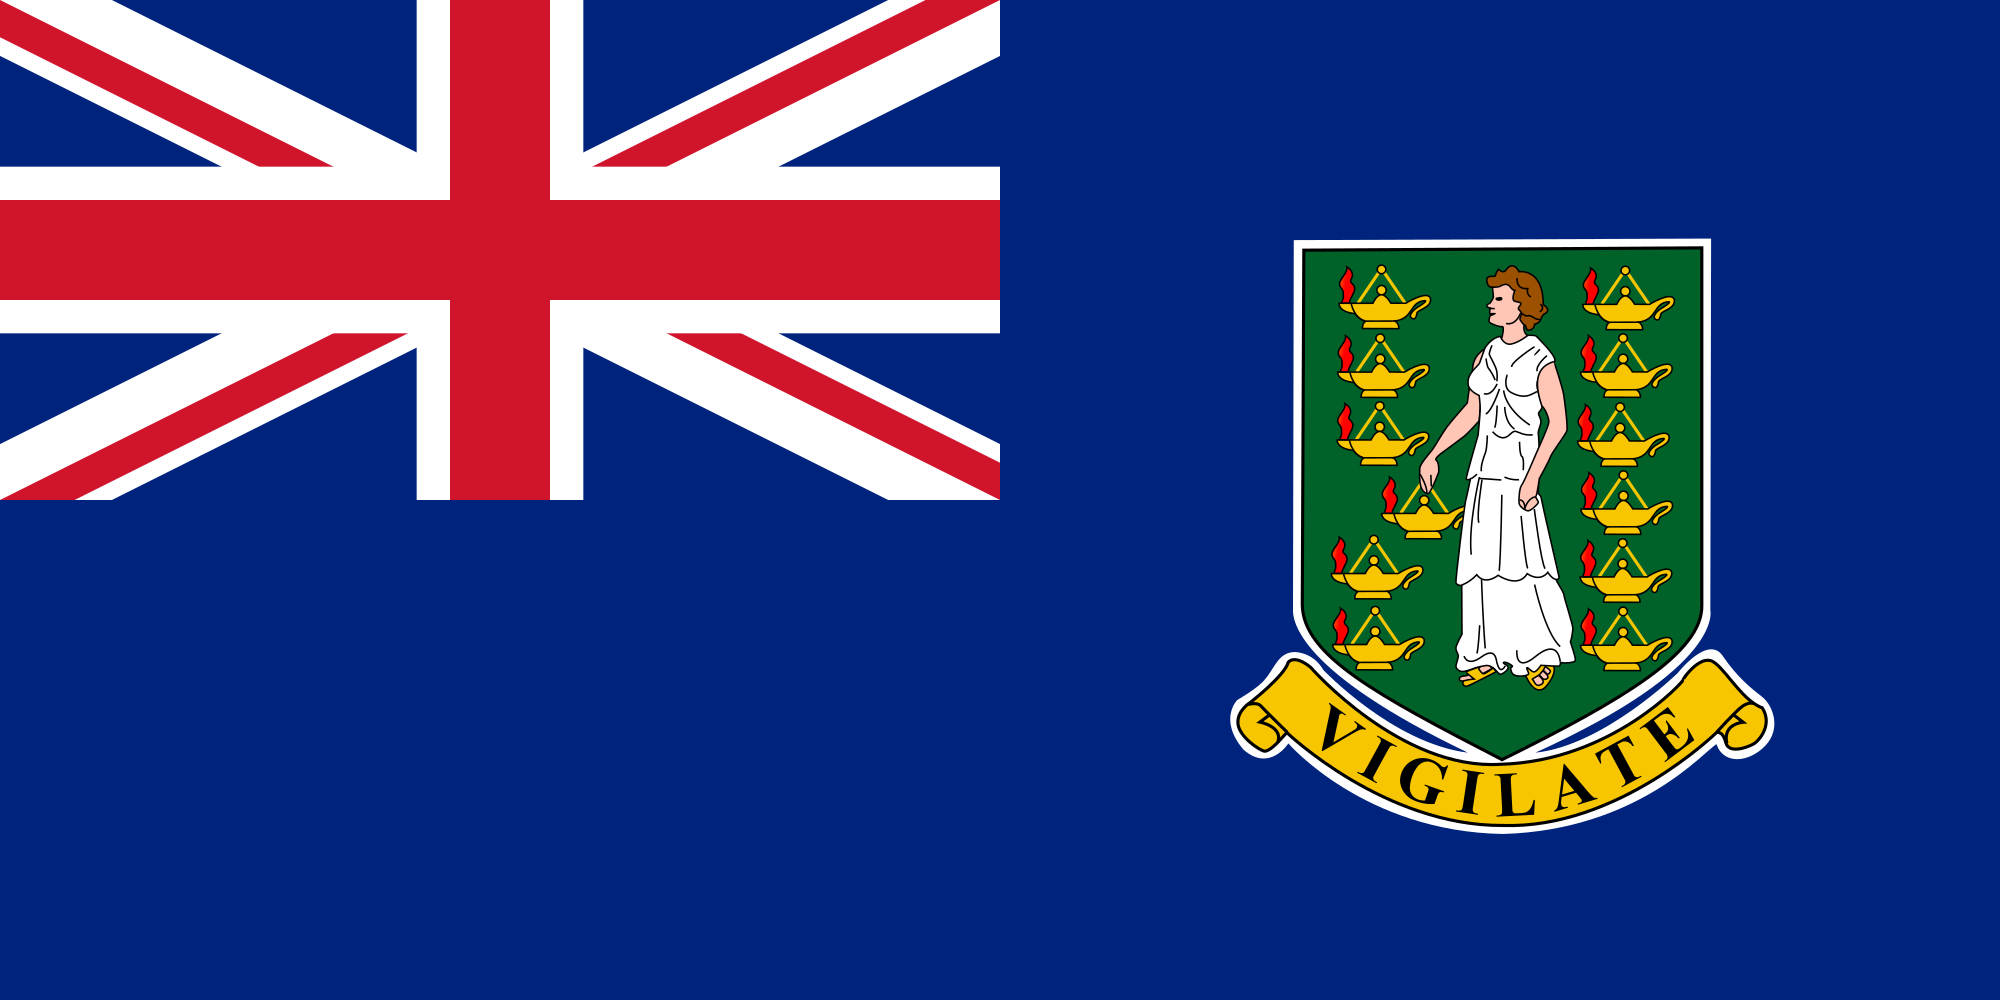 British_Virgin_Islands_flag